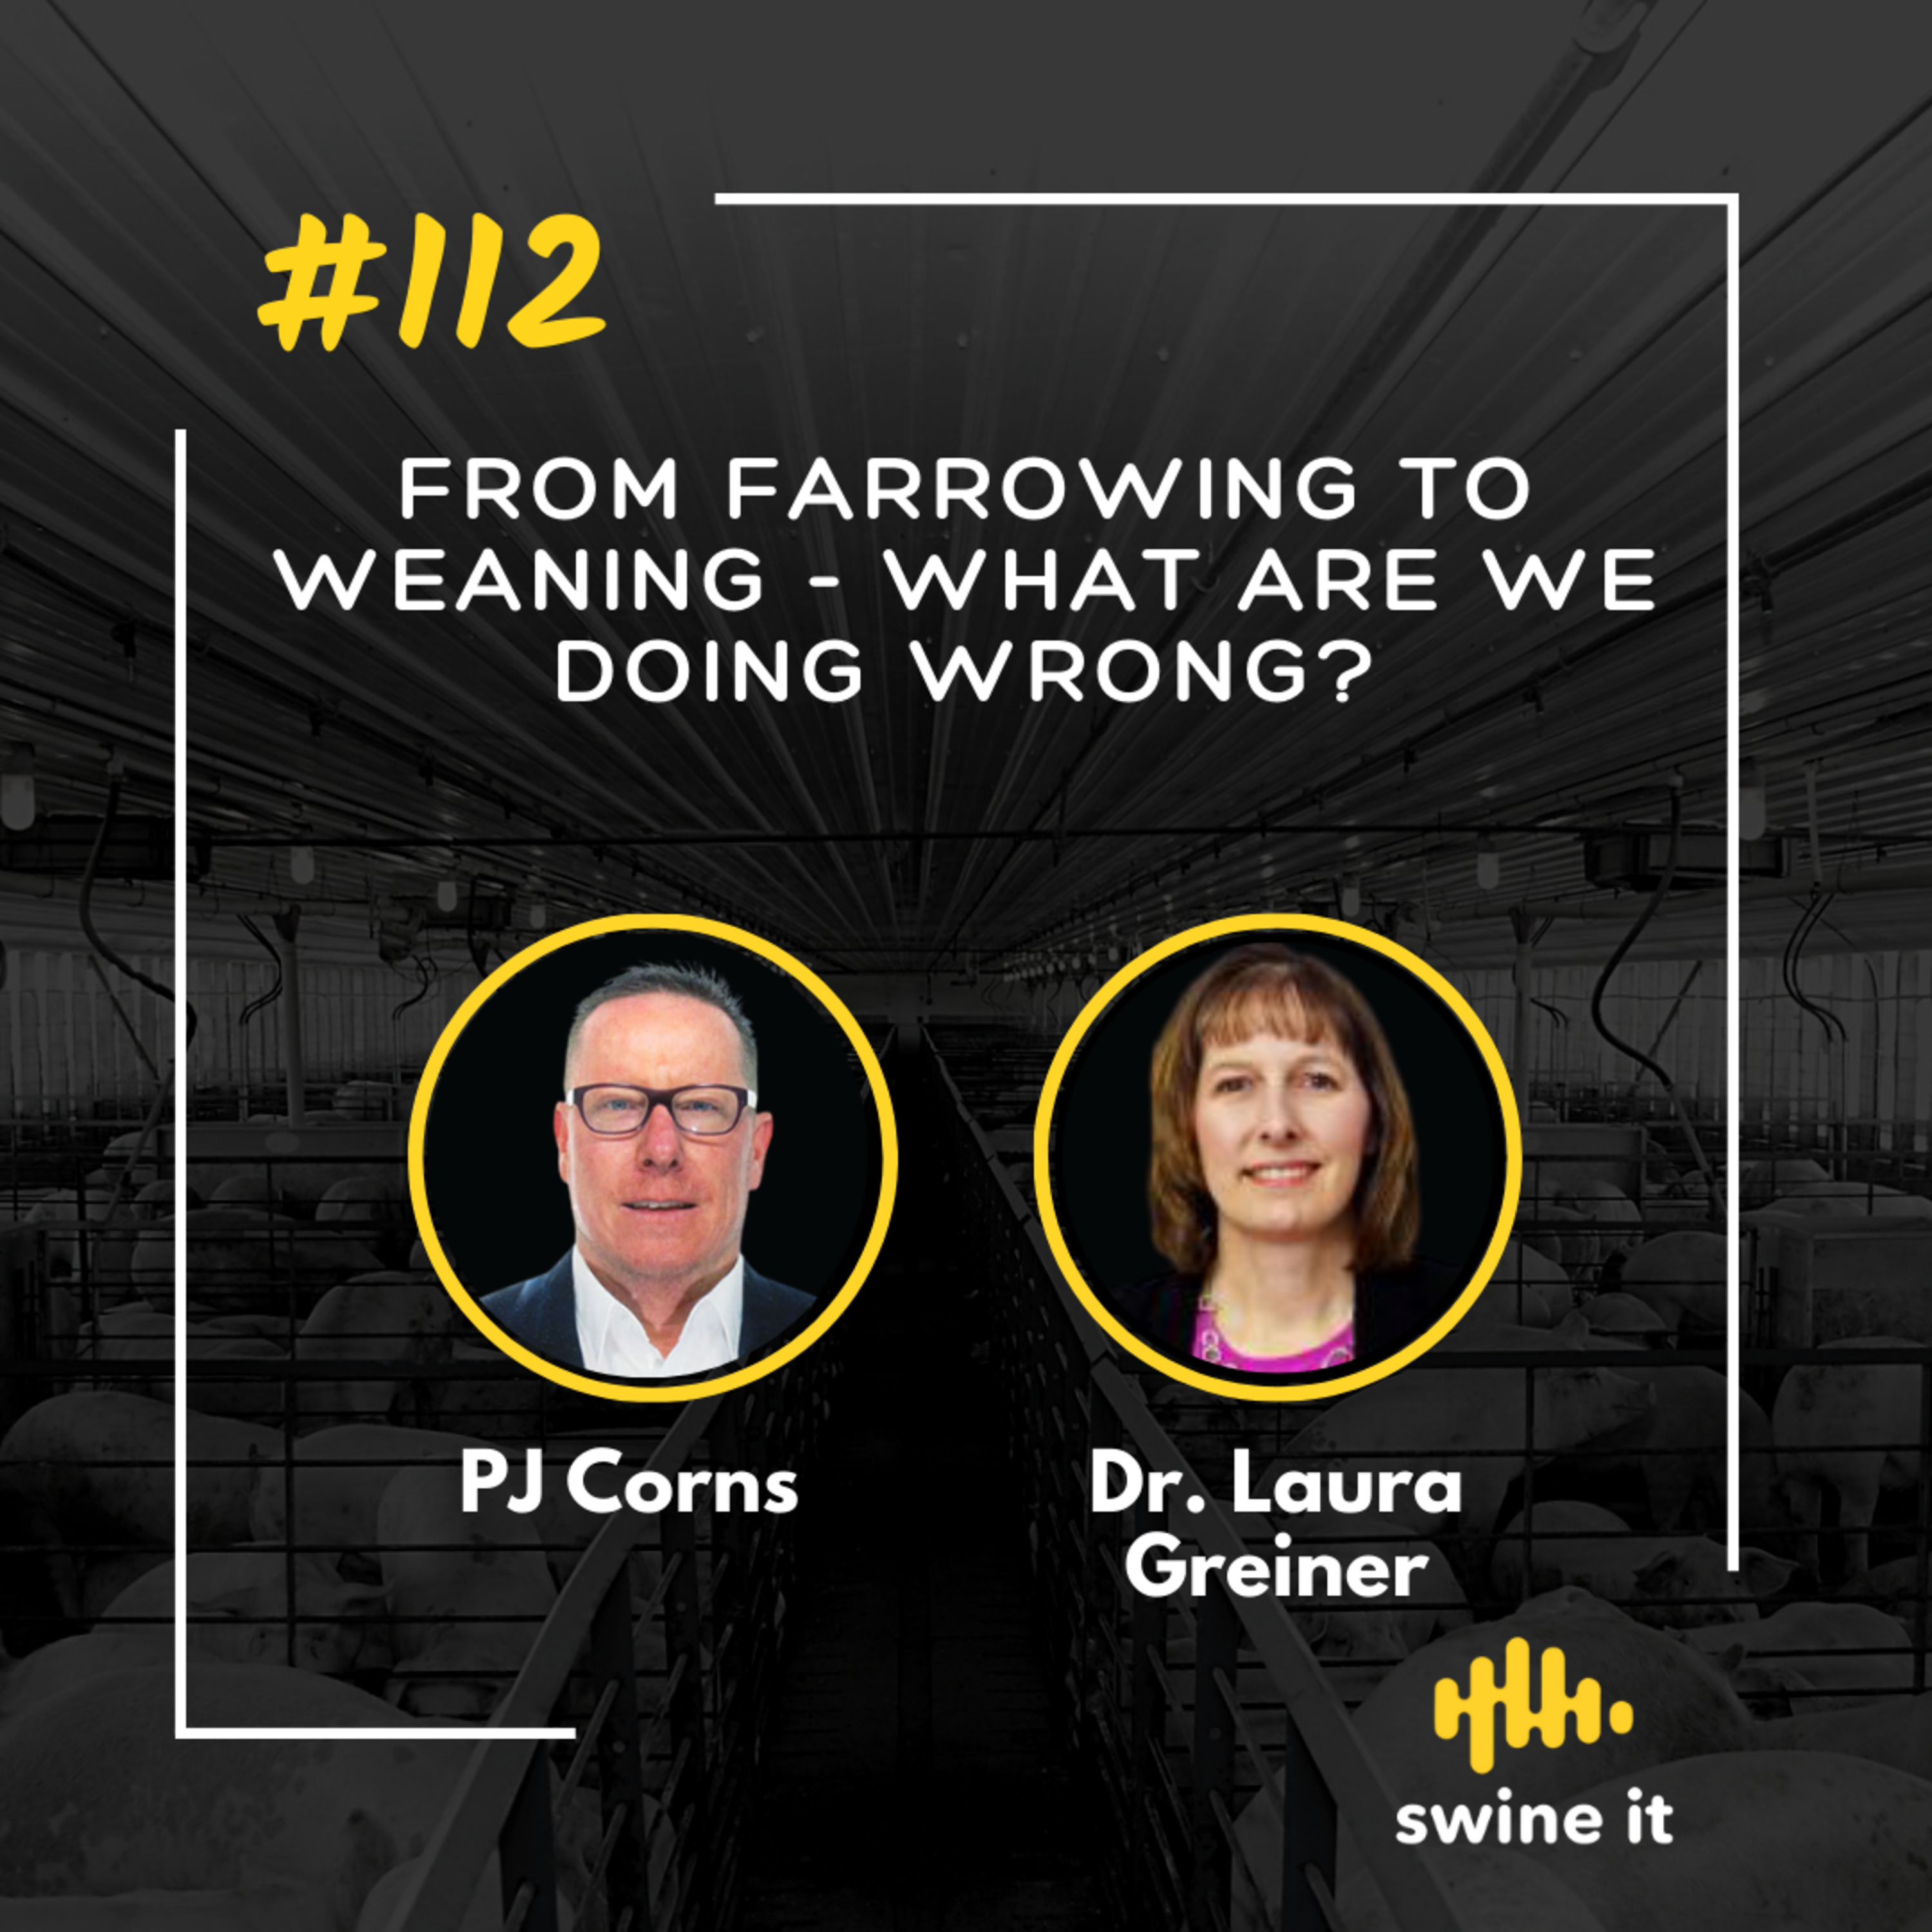 From farrowing to weaning - what are we doing wrong? - PJ Corns